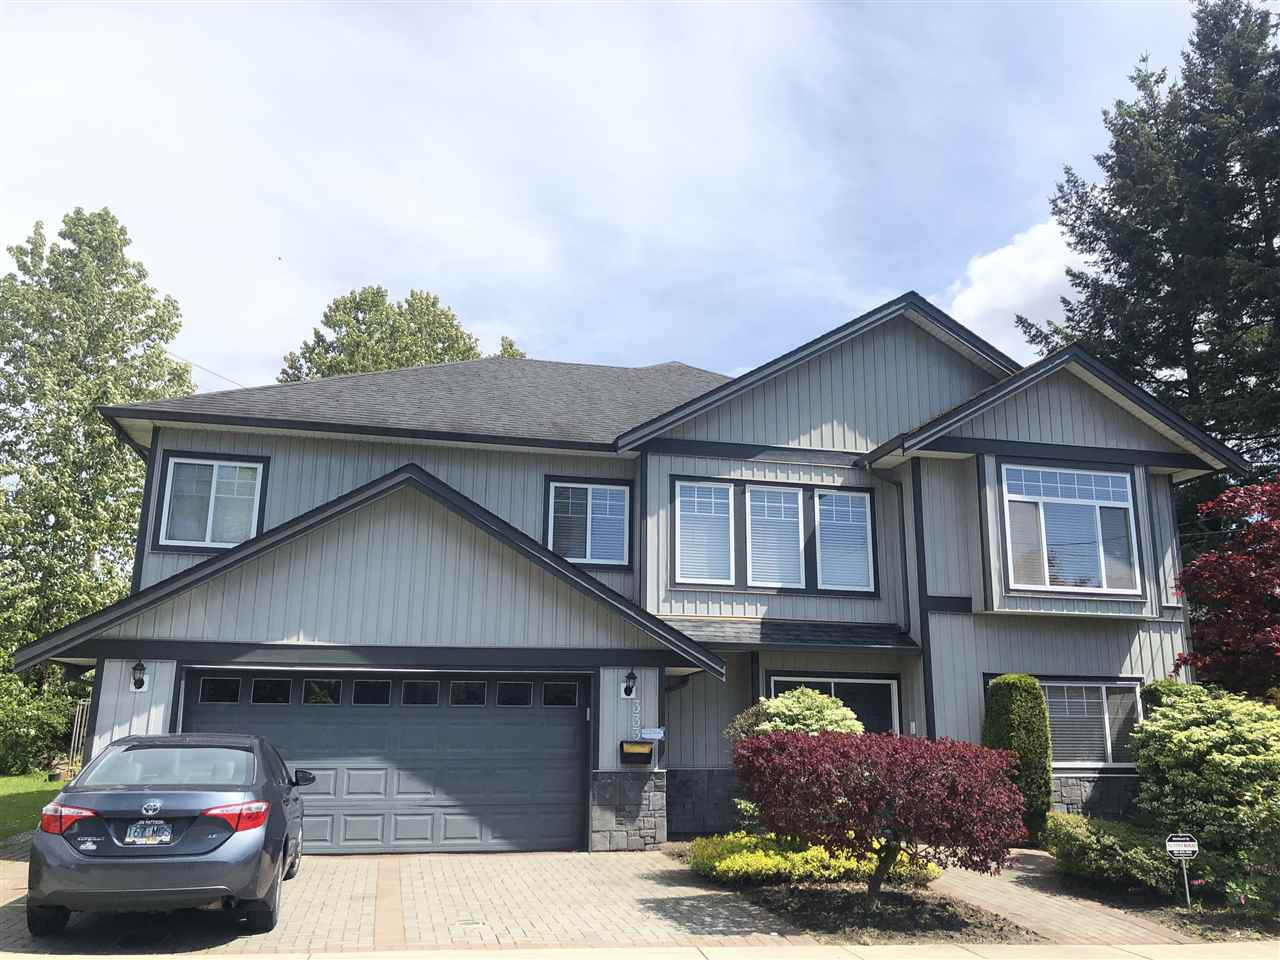 Main Photo: 333 DUNLOP Street in Coquitlam: Coquitlam West House for sale : MLS®# R2453841